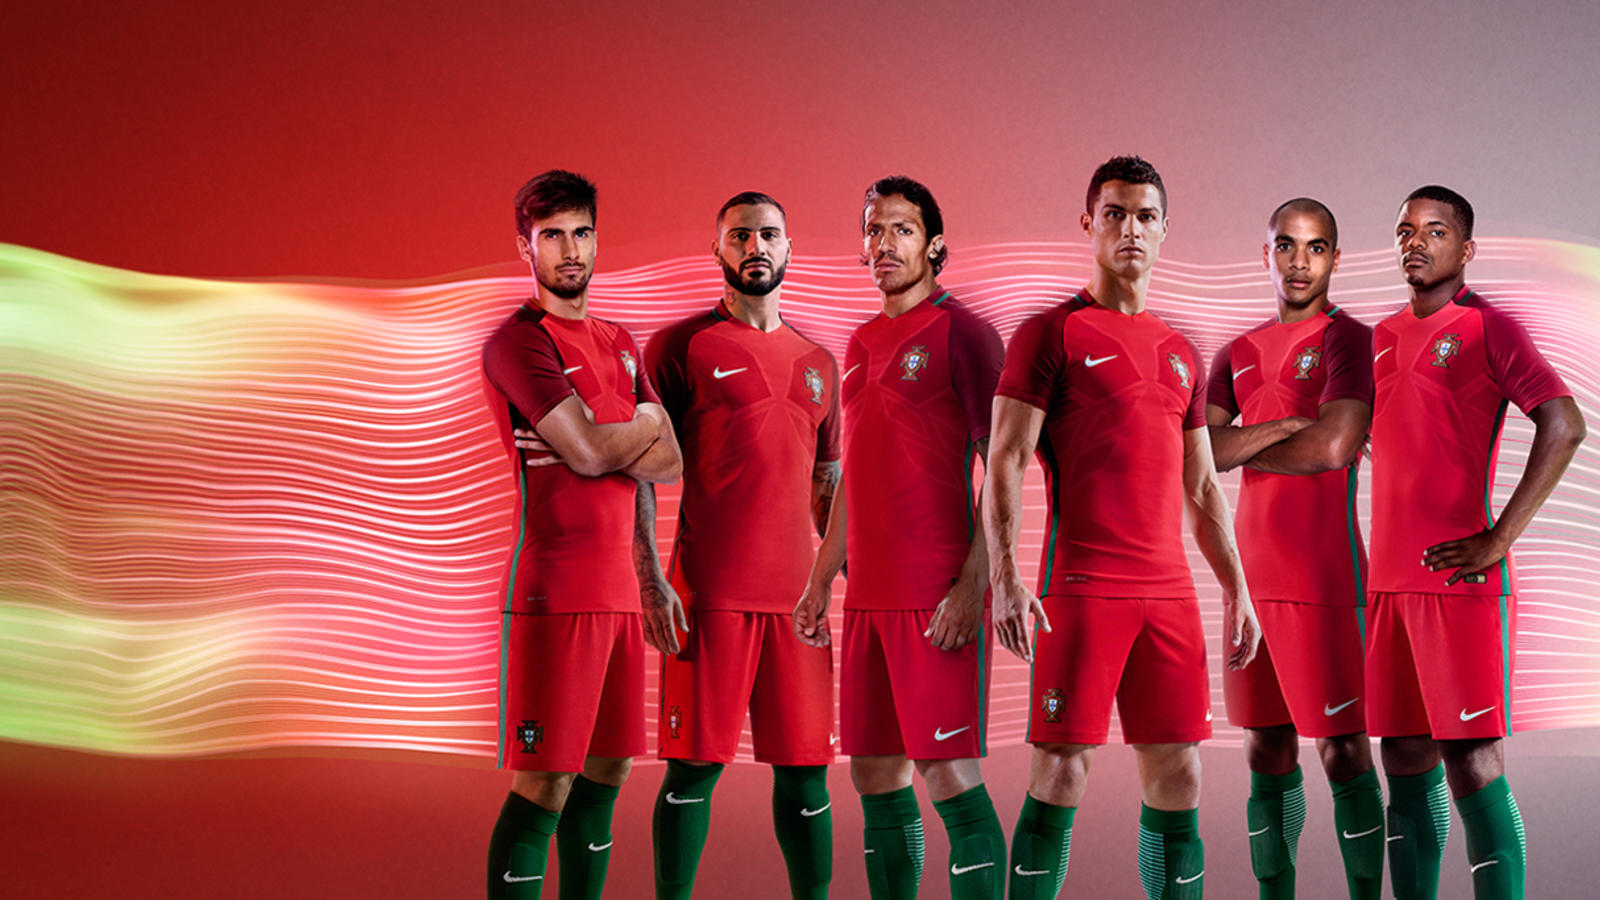 new concept 80759 b7647 Portugal 2016 National Football Kits - Nike News